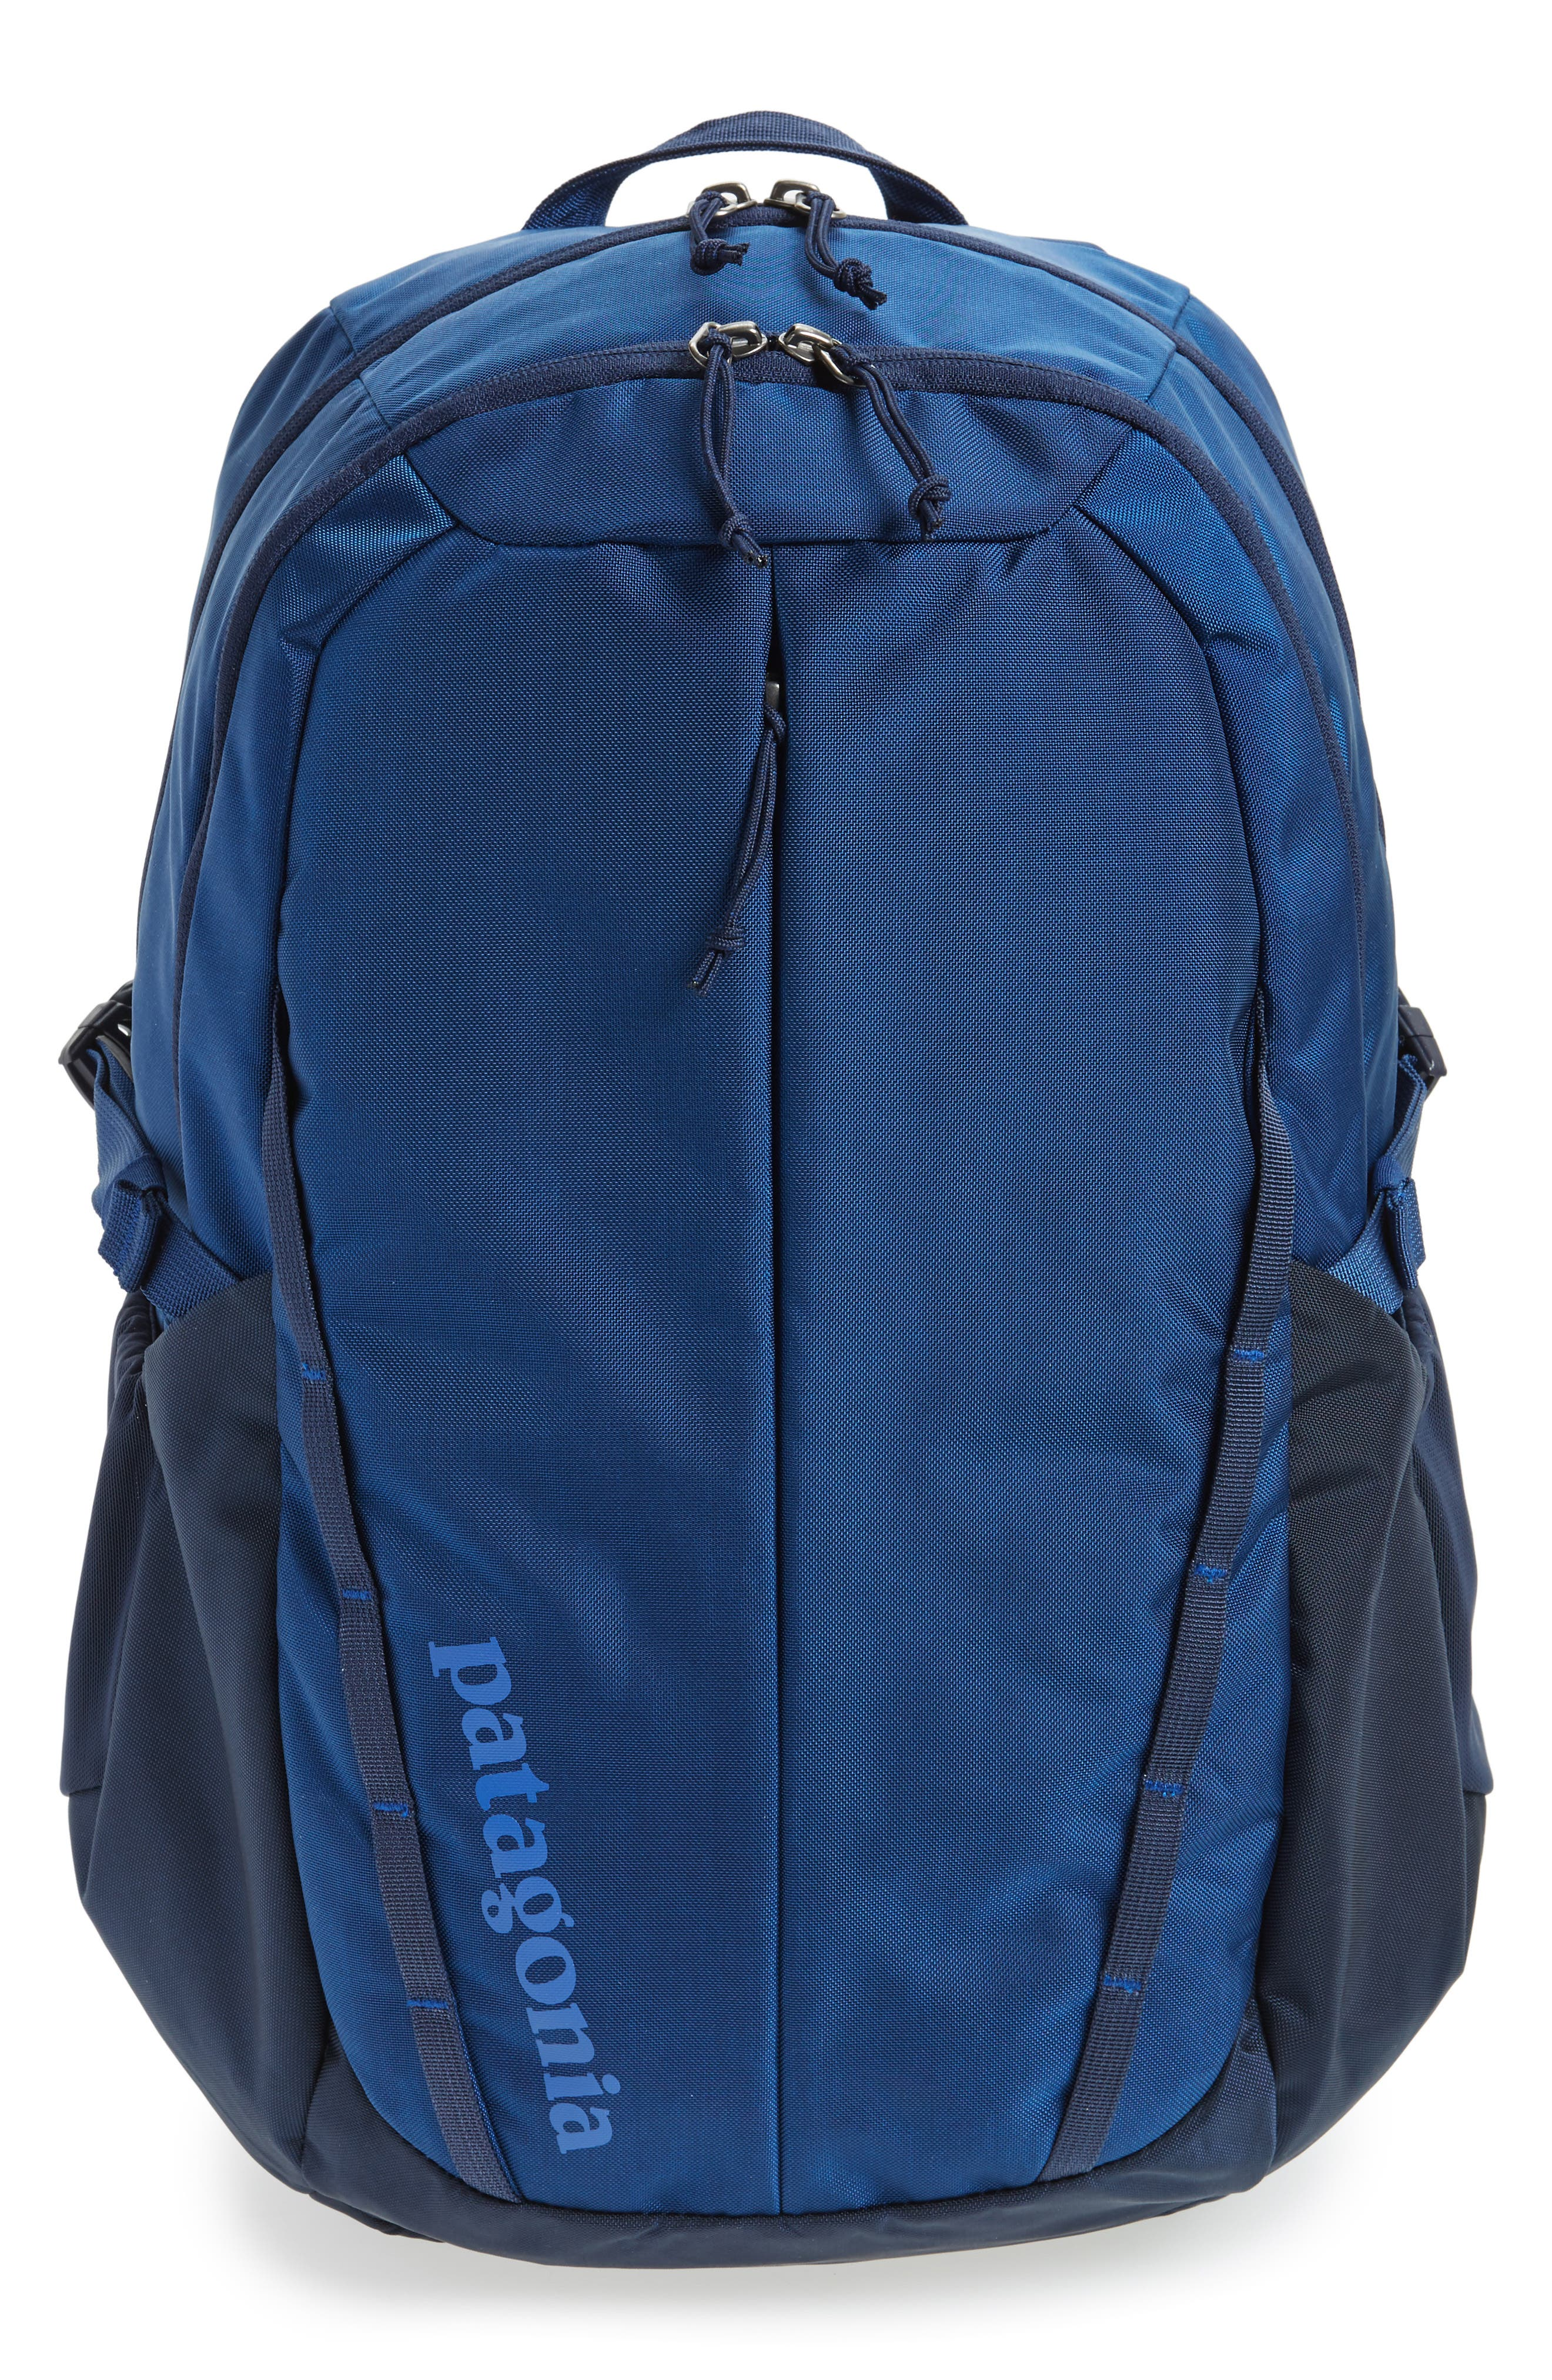 28L Refugio Backpack,                         Main,                         color, Navy Blue